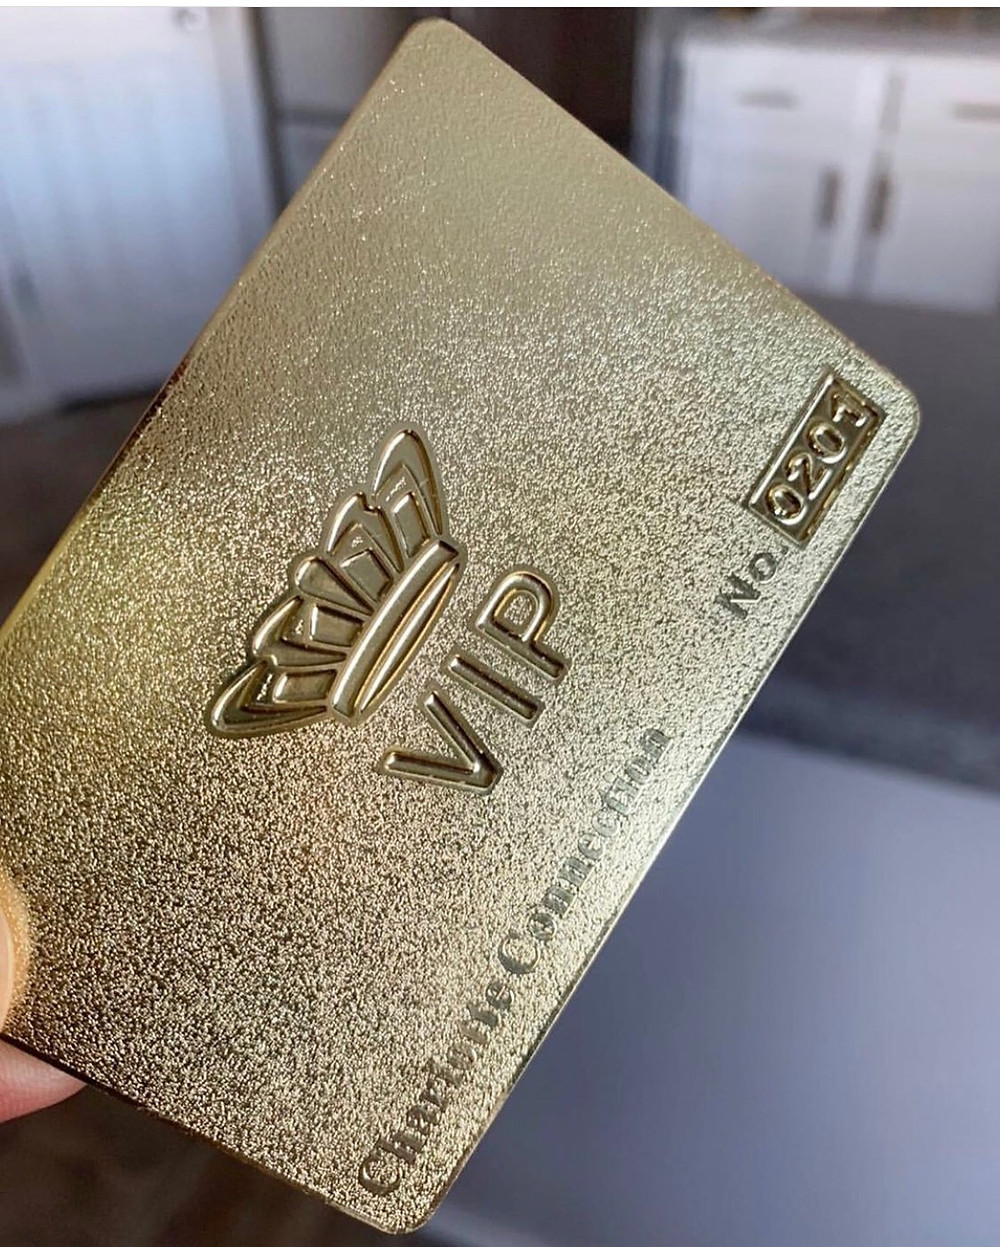 Charlotte Connection VIP card